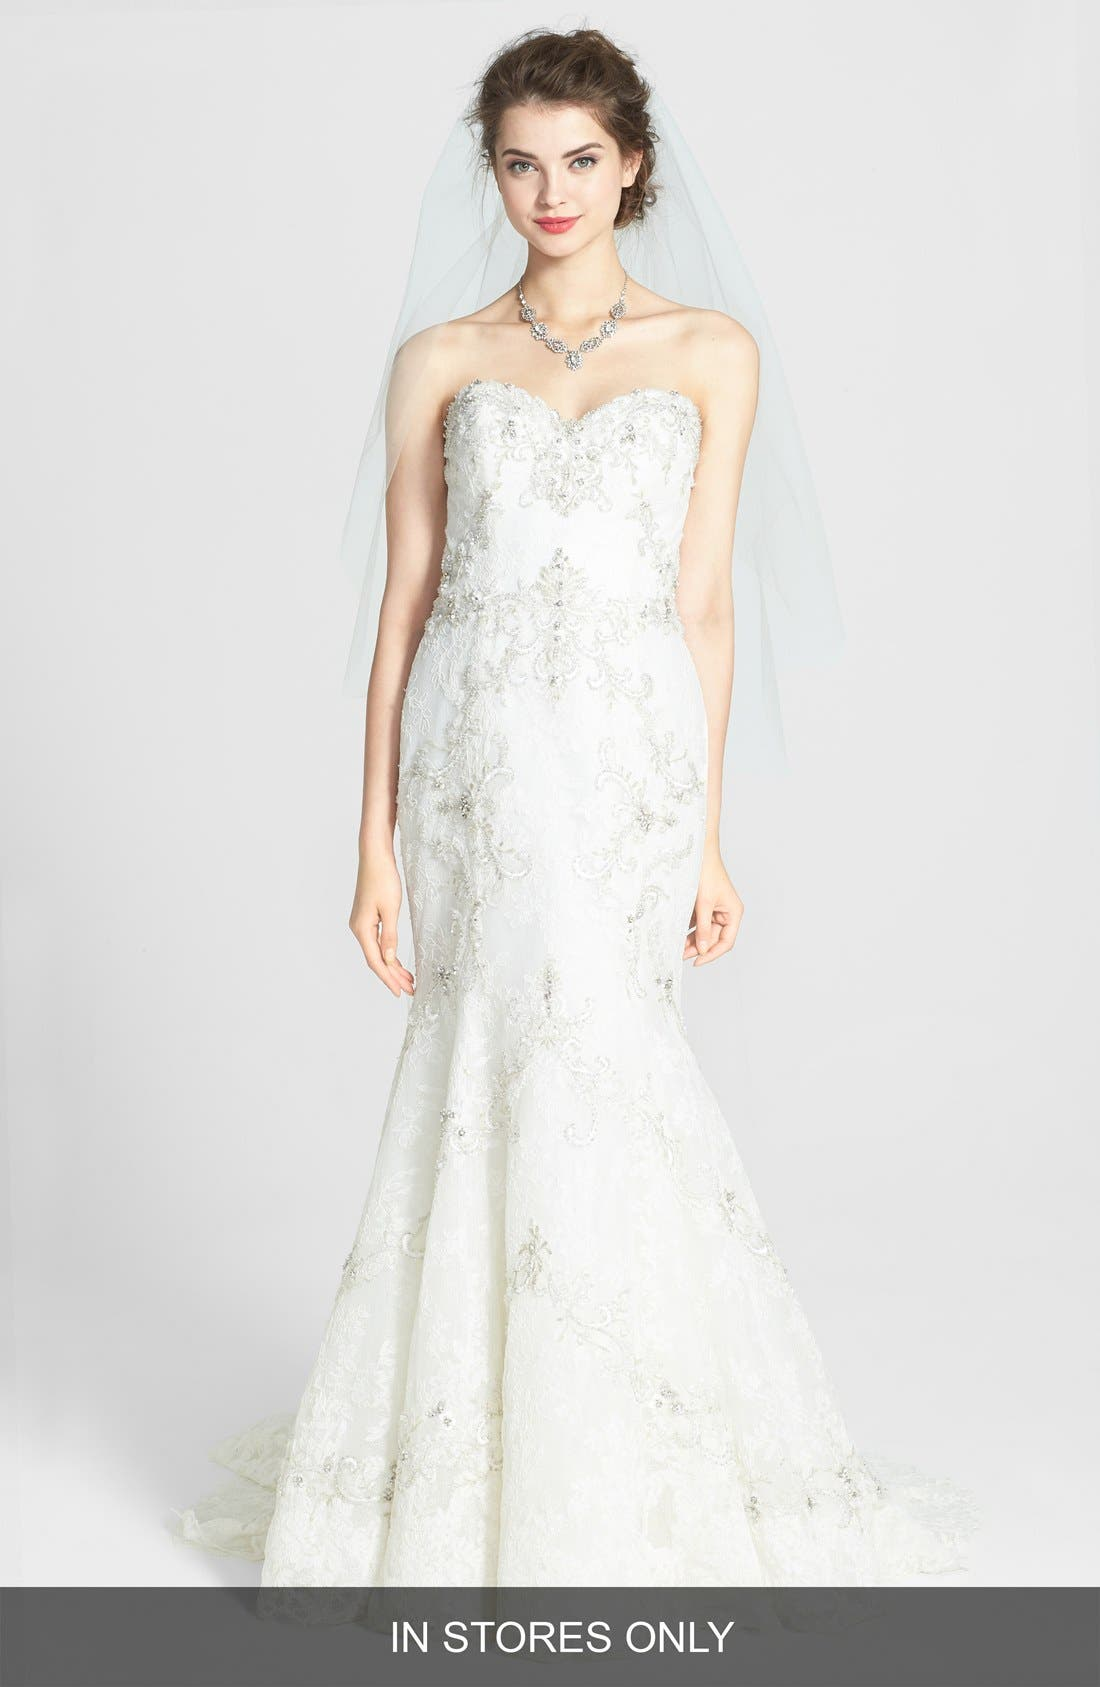 Alternate Image 1 Selected - Watters 'Olina' Beaded Lace Mermaid Dress (In Stores Only)